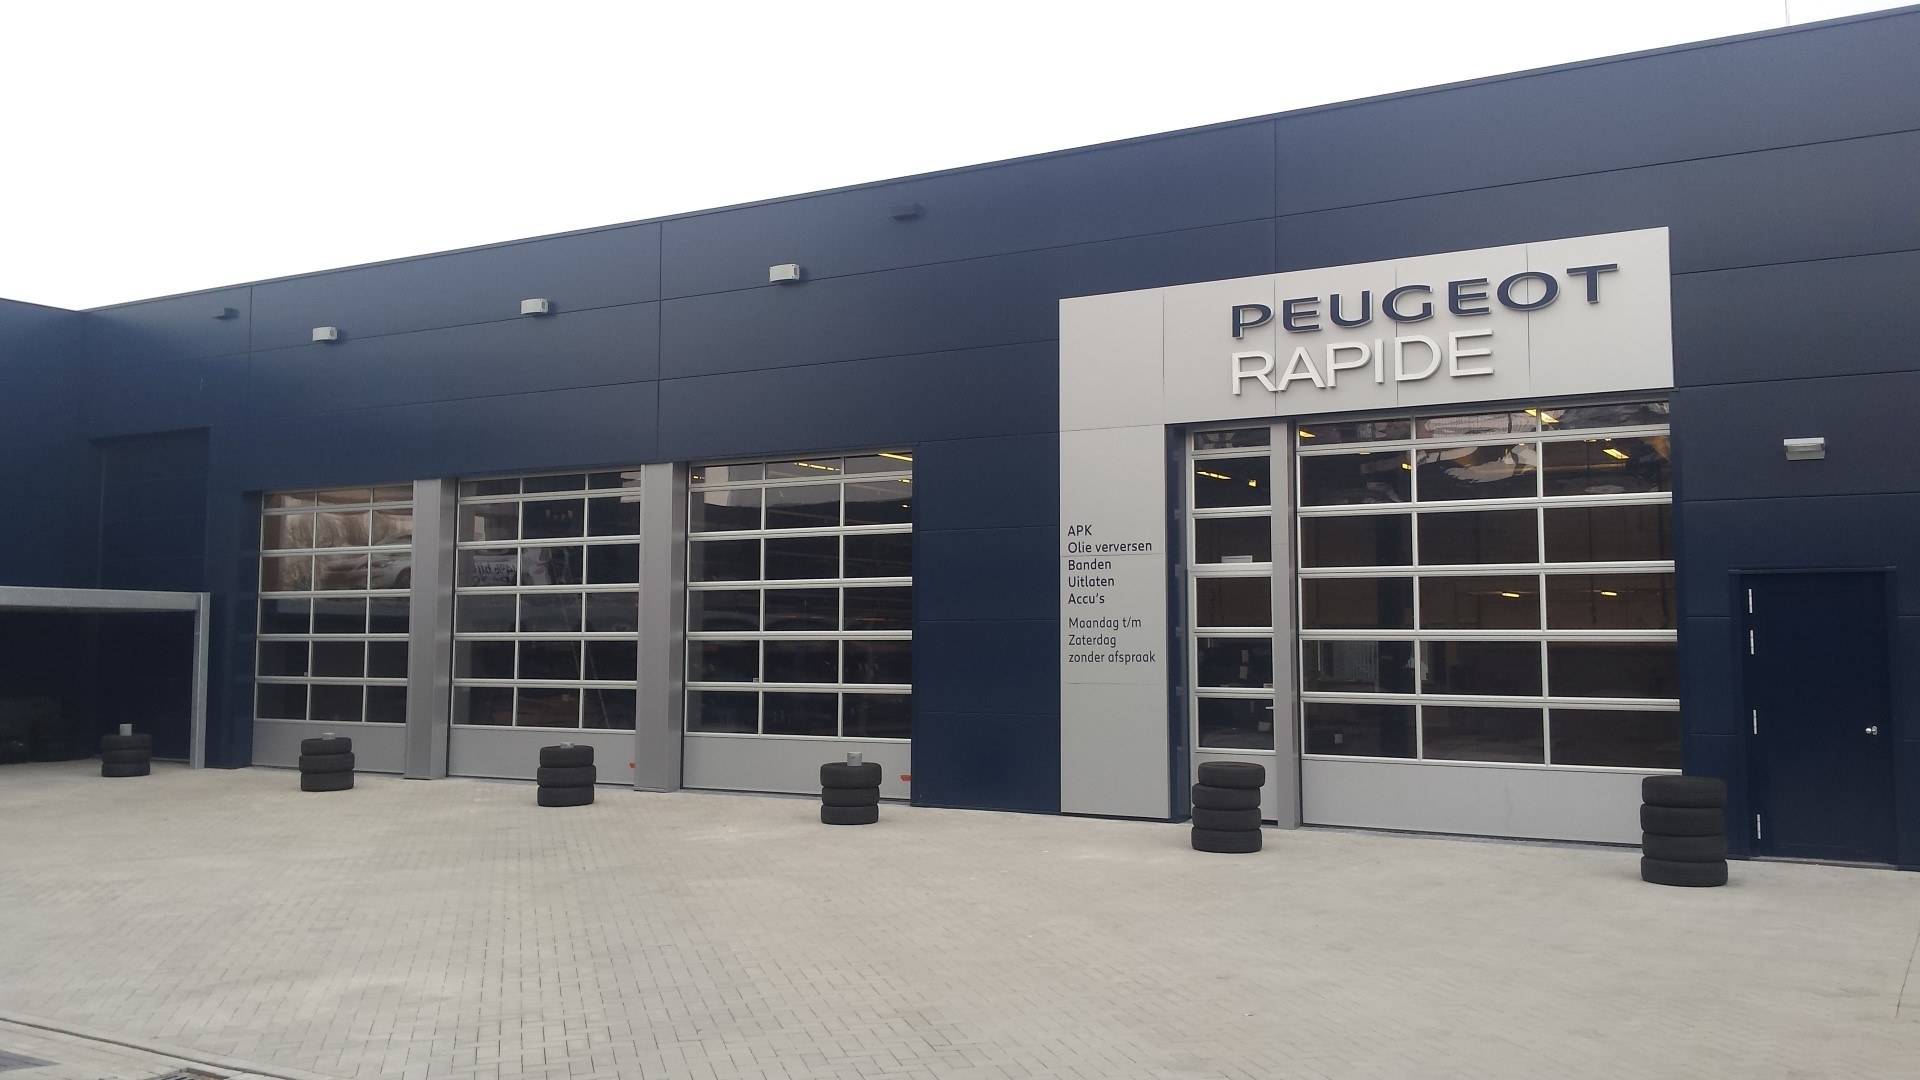 All peugeot dealers in The Netherlands use Compact doors